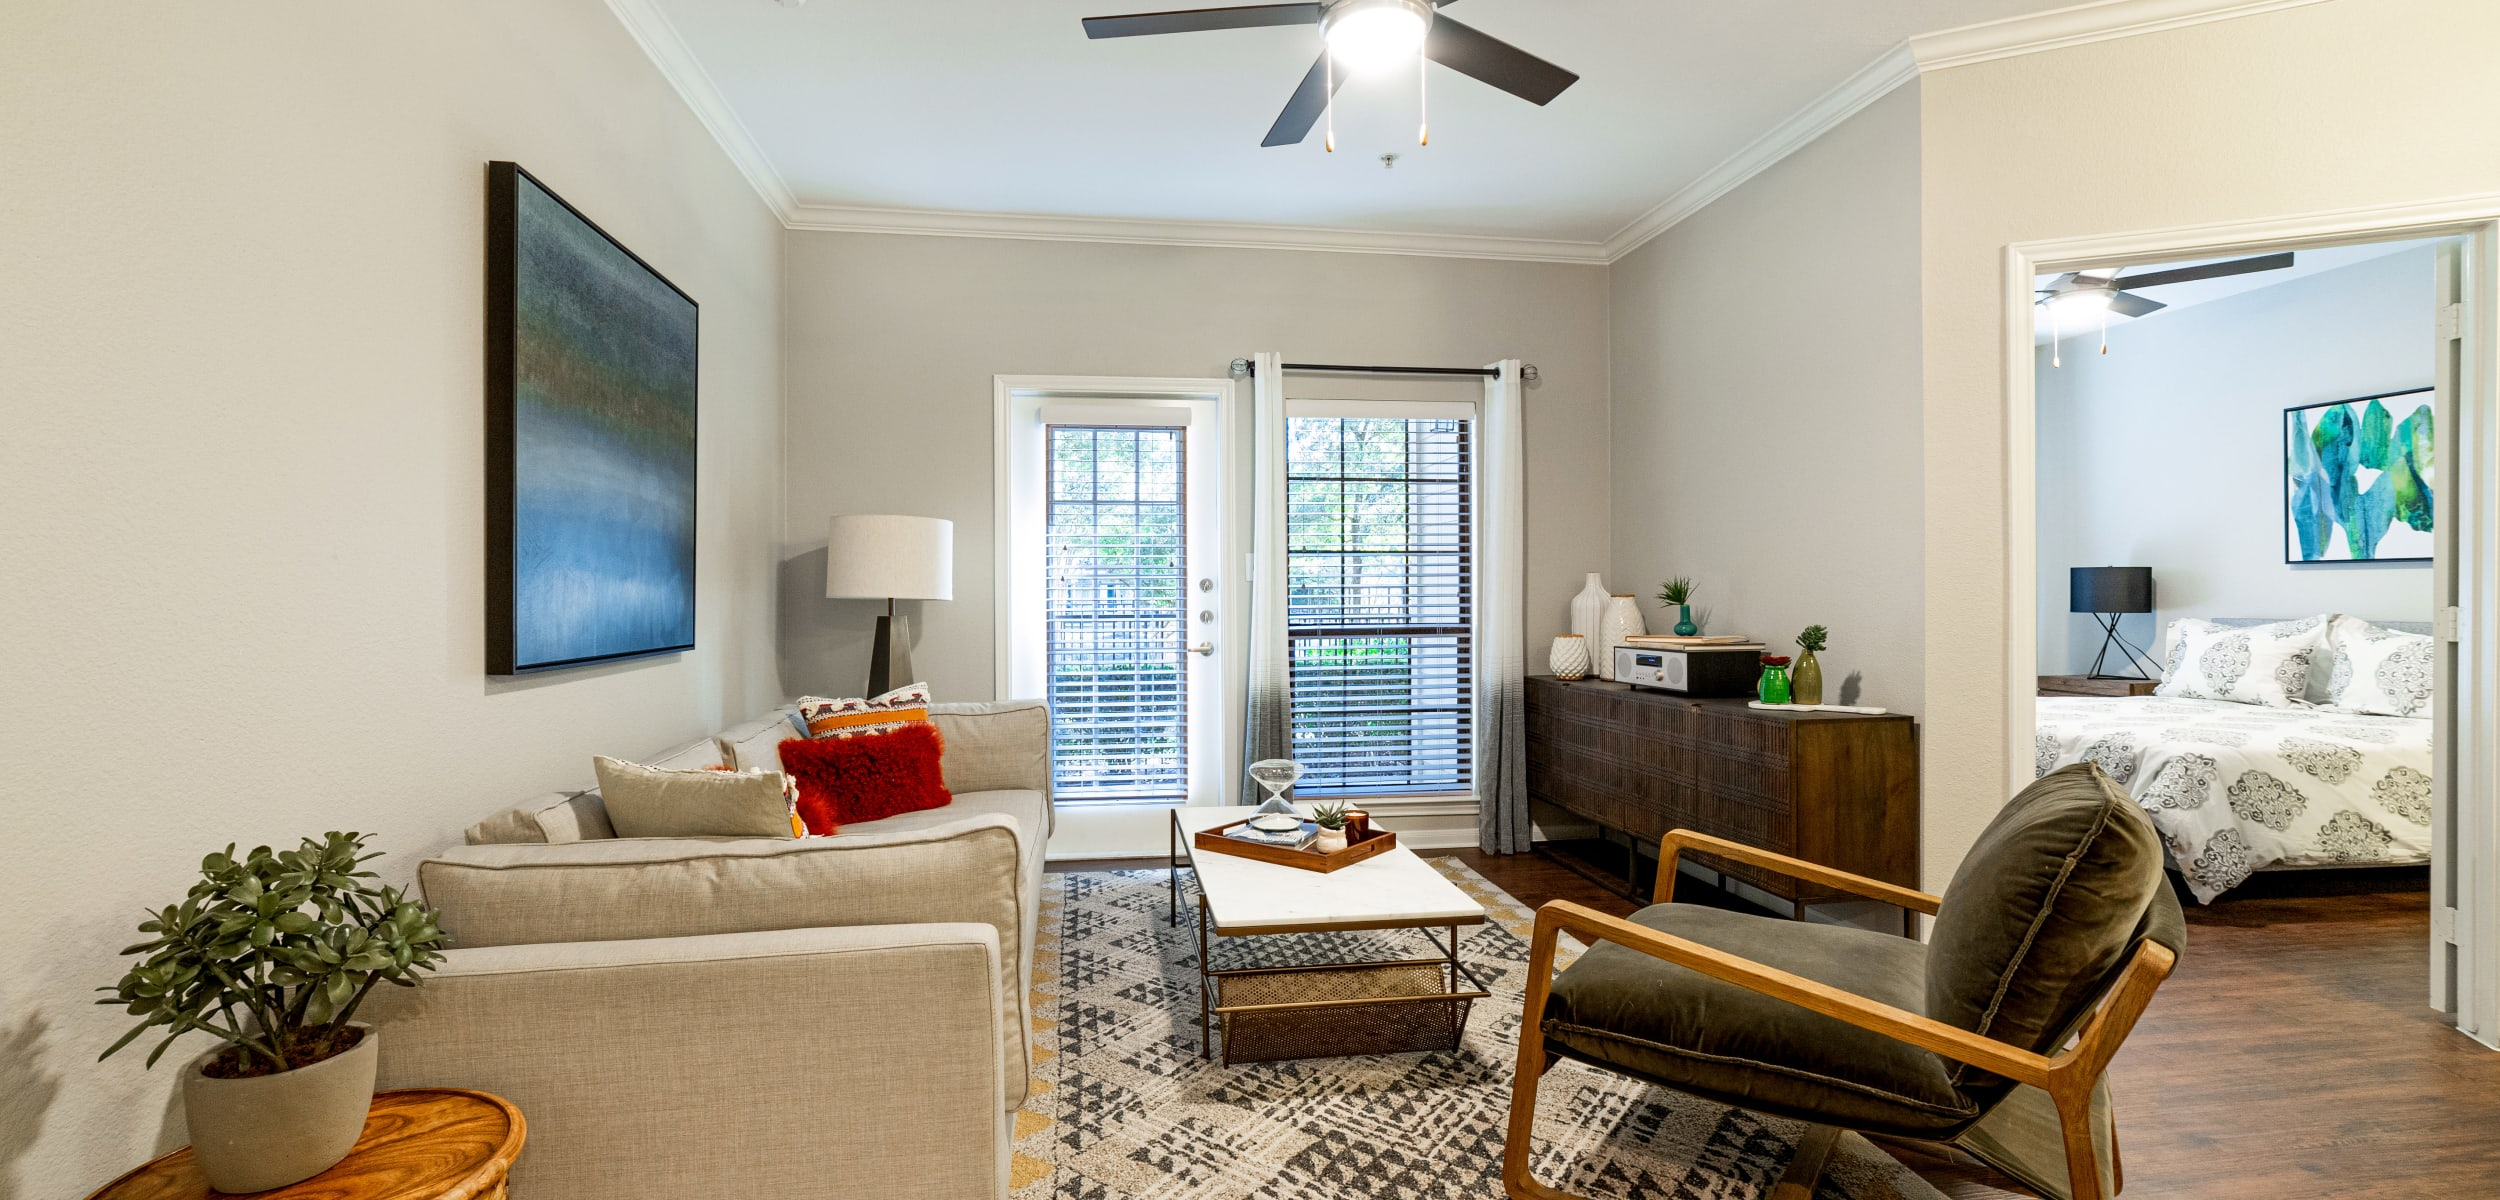 Living space at Marquis Parkside in Austin, Texas